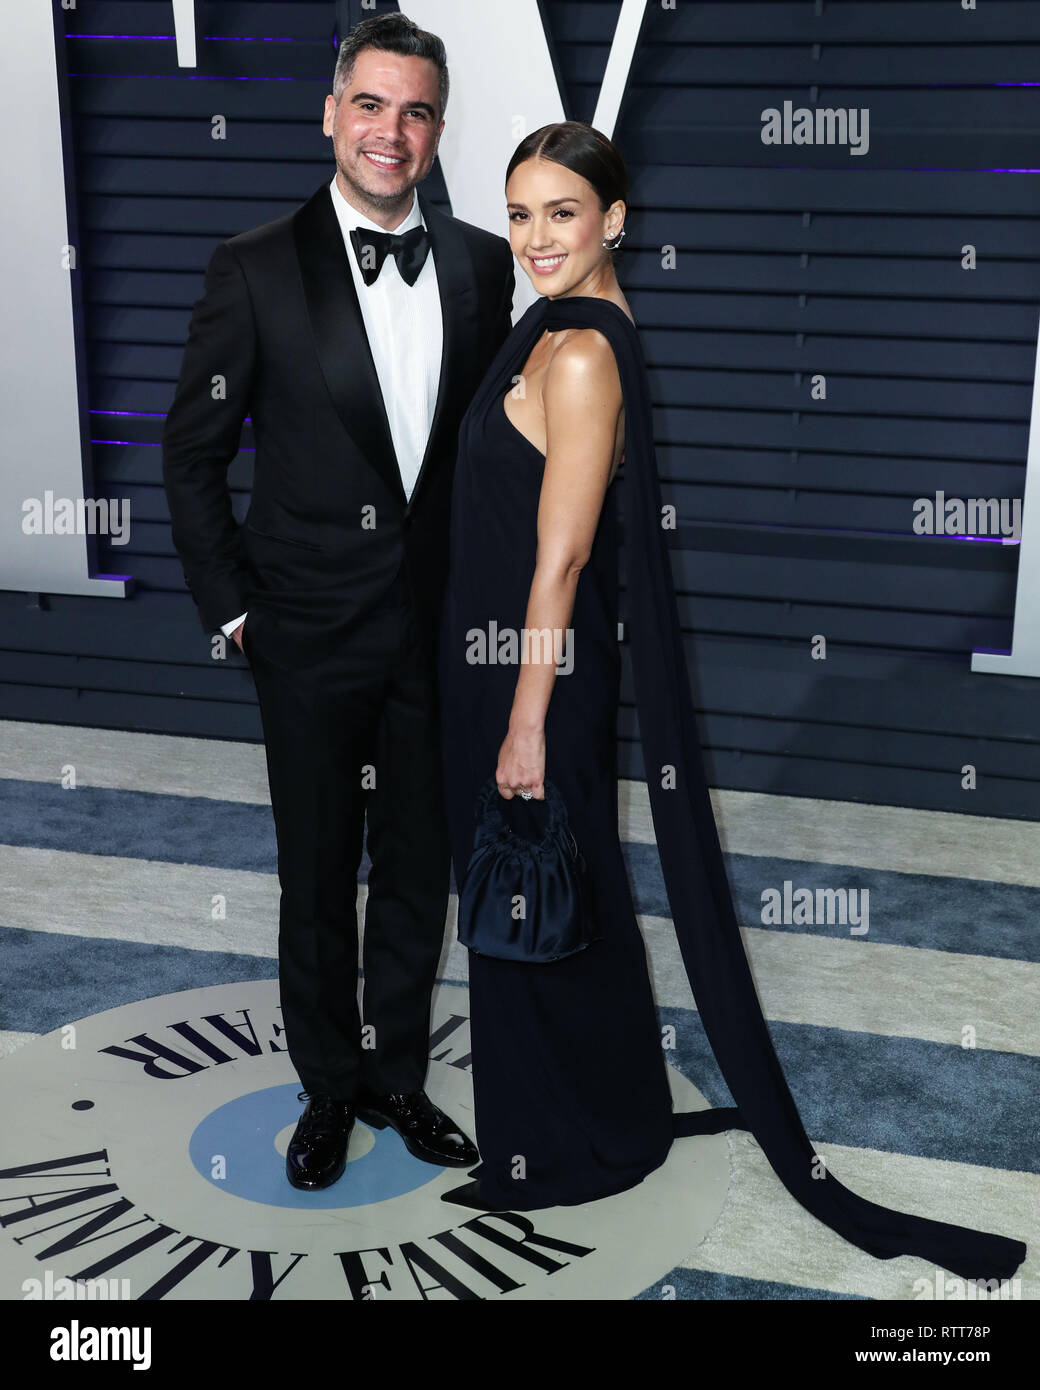 27e1cbf0adf ... FEBRUARY 24  Cash Warren and wife actress Jessica Alba arrive at the  2019 Vanity Fair Oscar Party held at the Wallis Annenberg Center for the  Performing ...